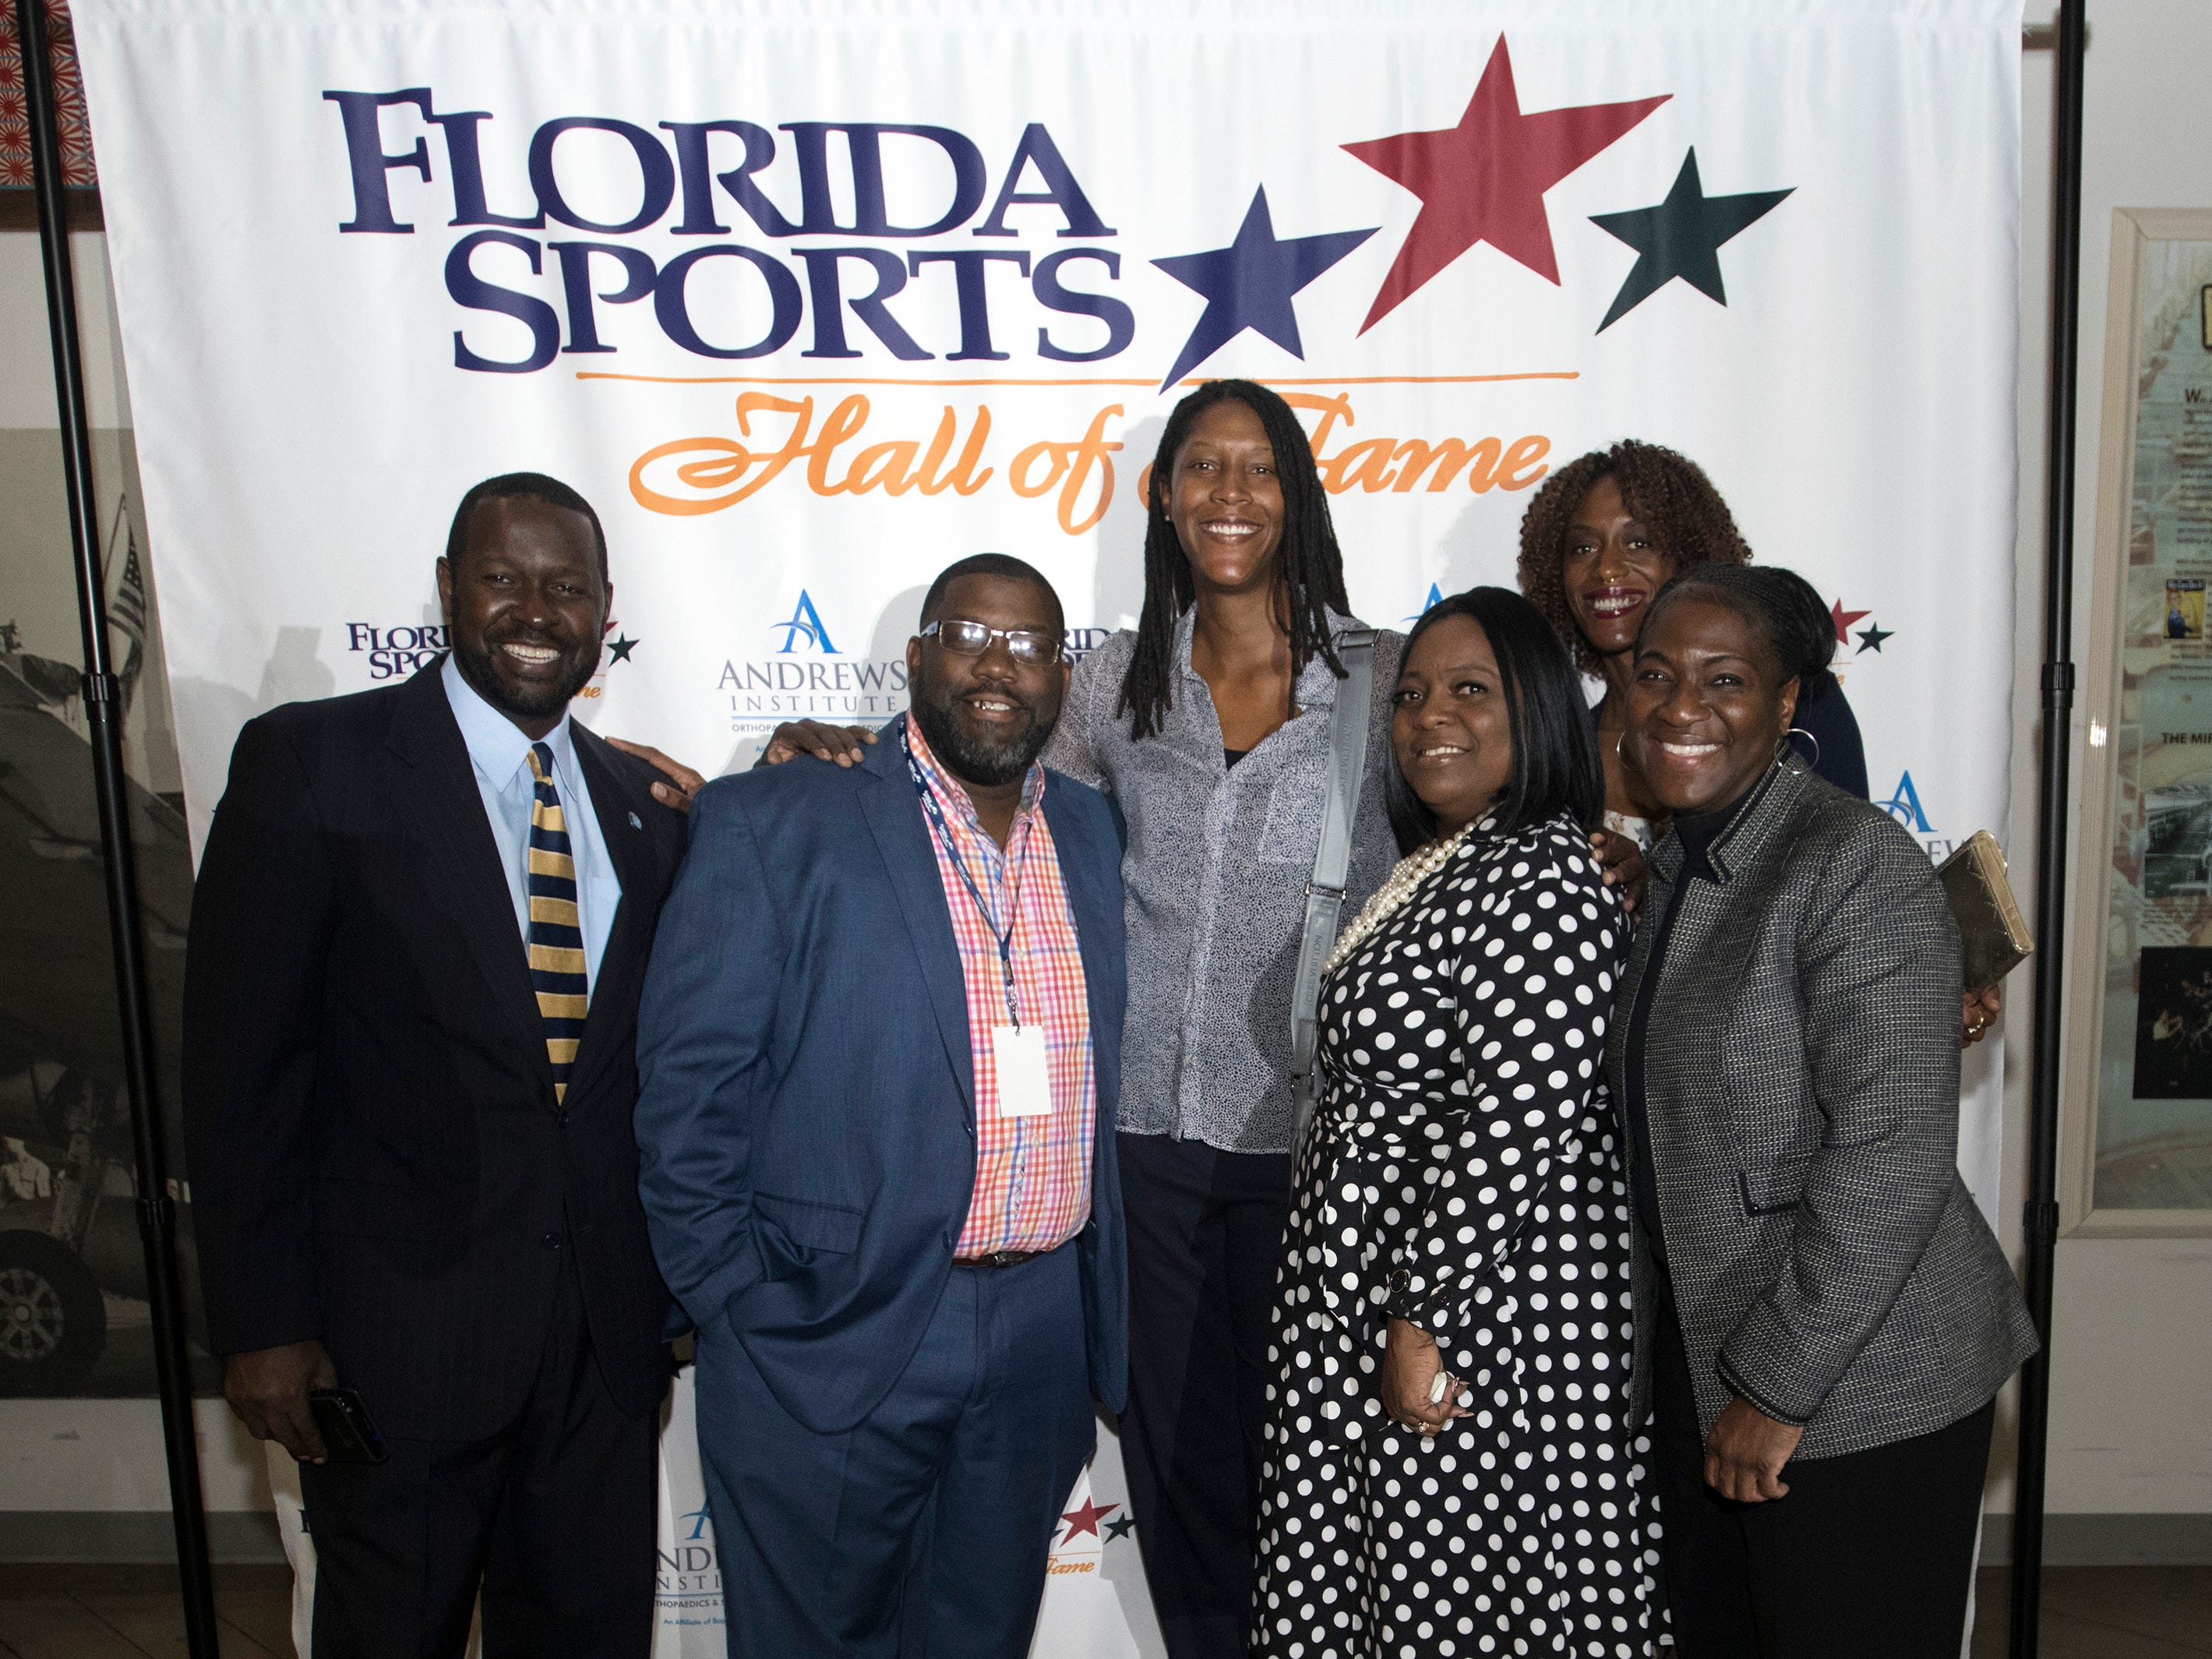 Pensacola own, Michelle Snow and WNBA star pose for photos with friend and family before the start of Wednesday night's 2018 Florida Sports Hall of Fame Enshrinement Ceremony at the National Naval Aviation Museum.